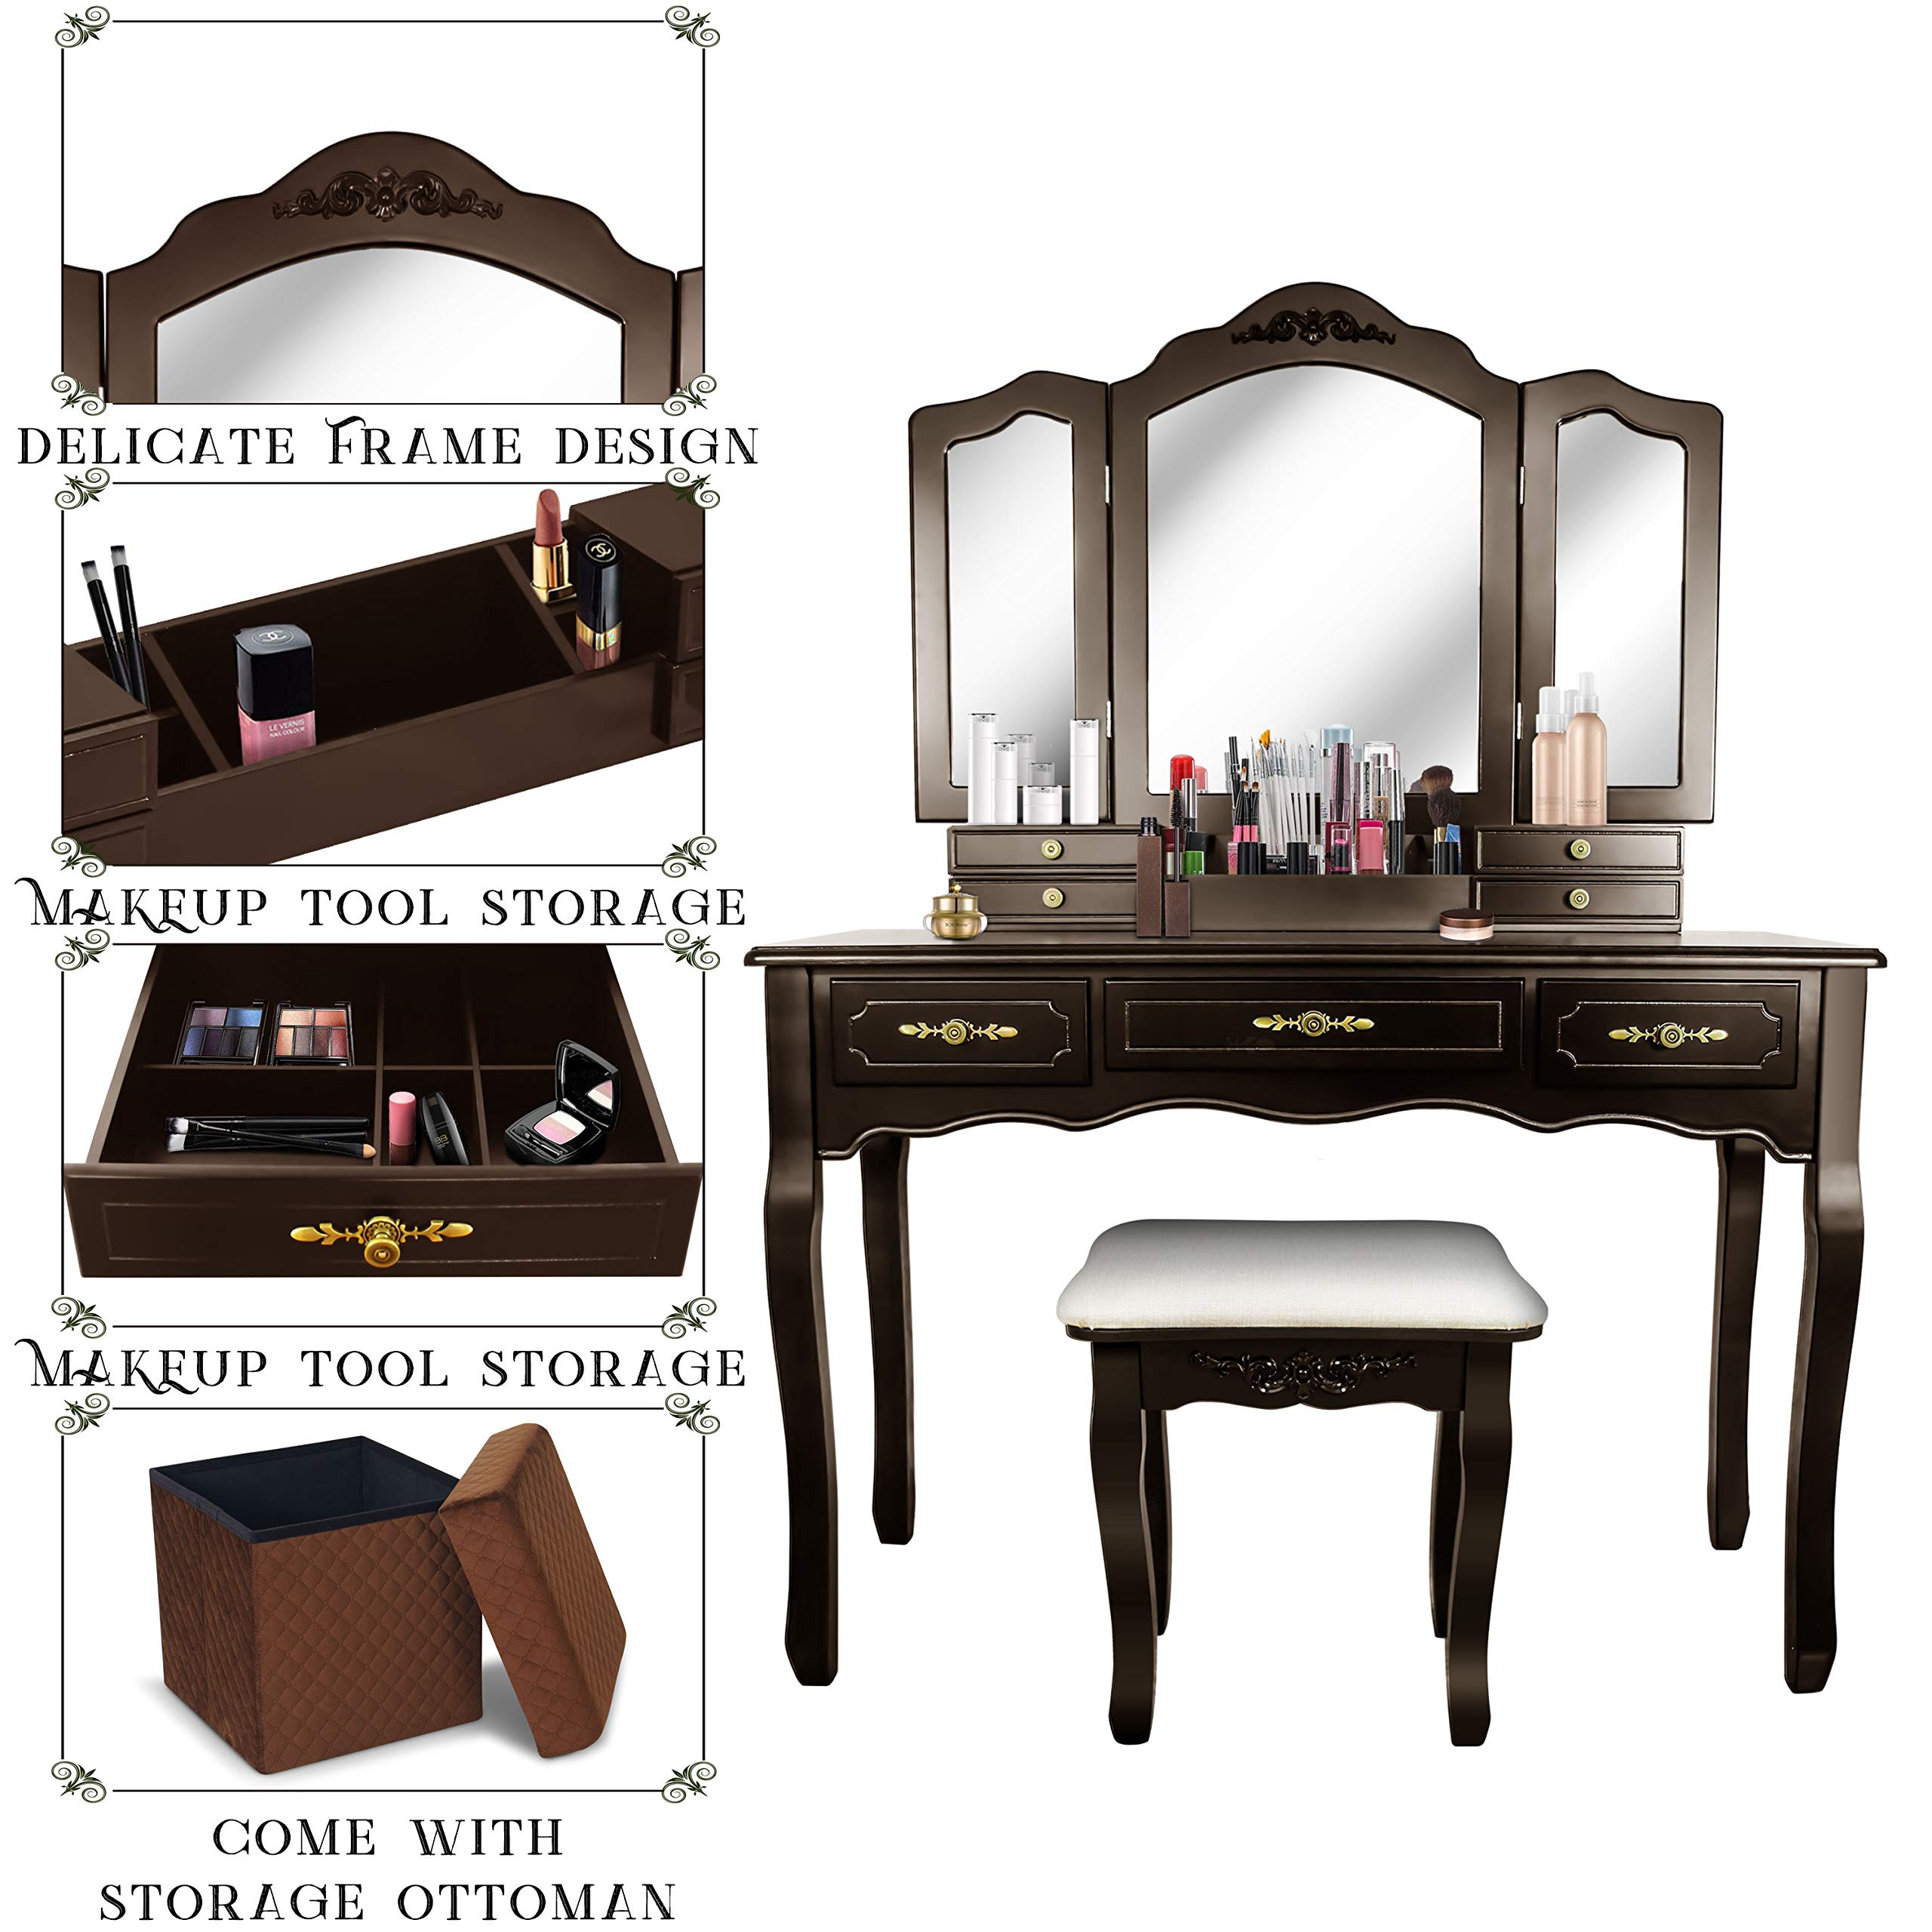 Vanity Beauty Station,Tri-Folding Necklace Hooked Mirrors,6 Organization 7 Drawers Makeup Dress Table with Cushioned Stool and Storage Ottoman-Espresso